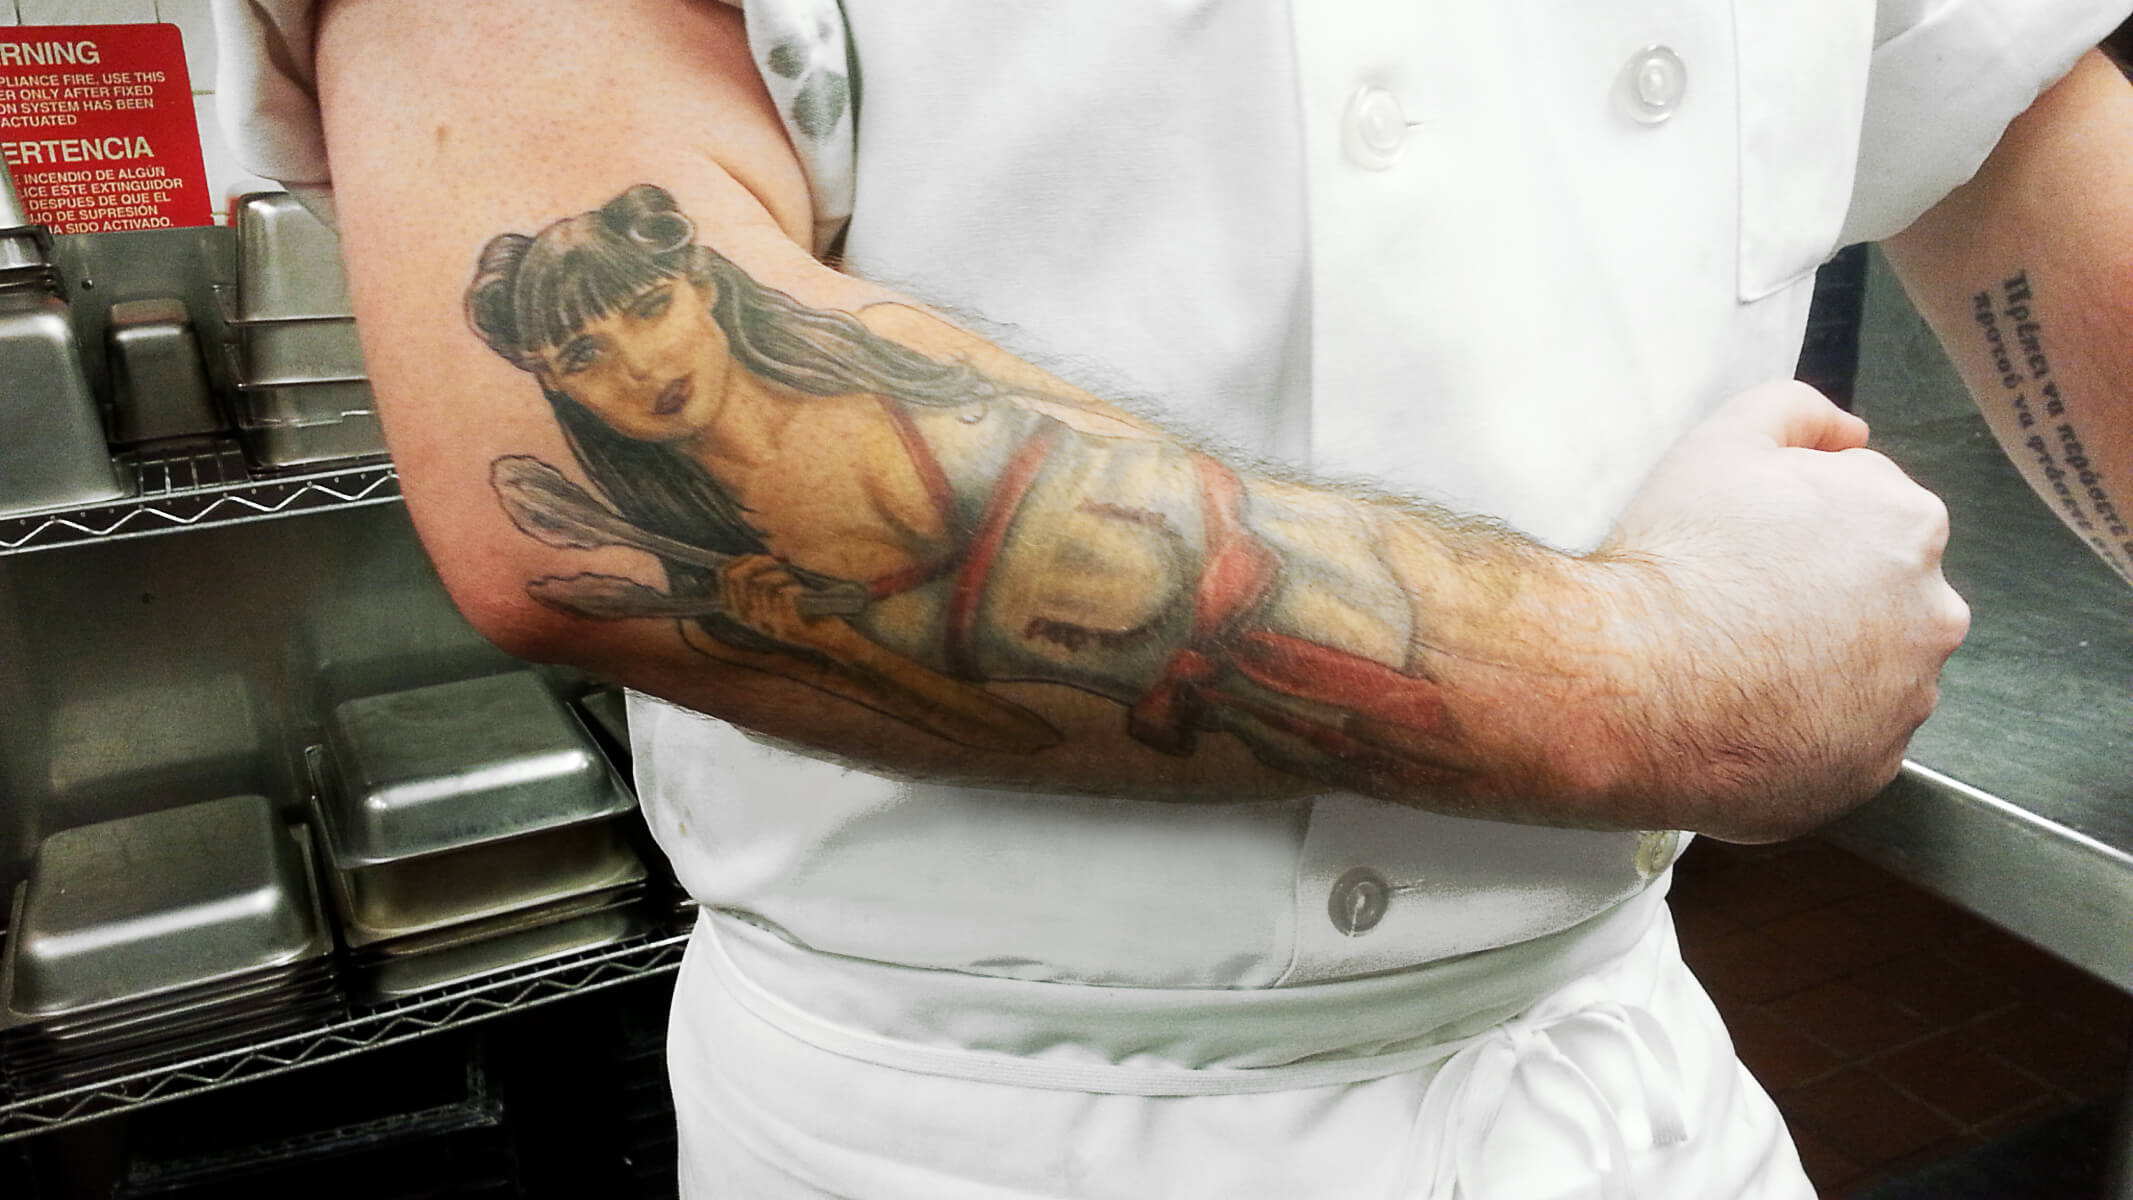 Stephen Giannos' tattoo